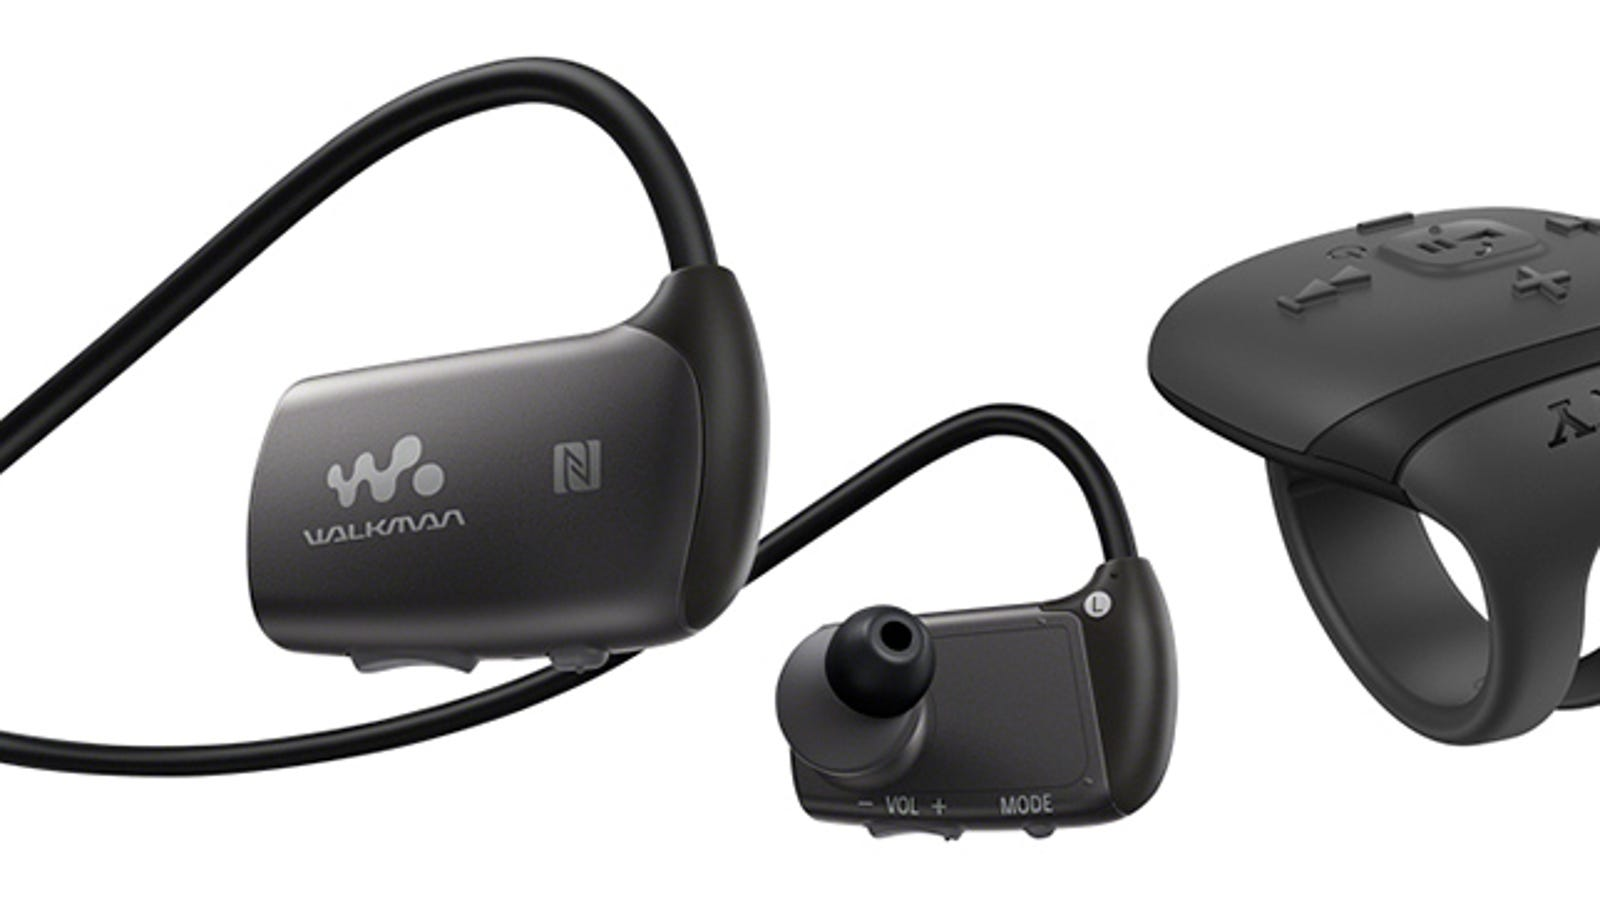 wireless headphones with bass booster - Sony Includes a Ring Remote With Its New Underwater Headphones